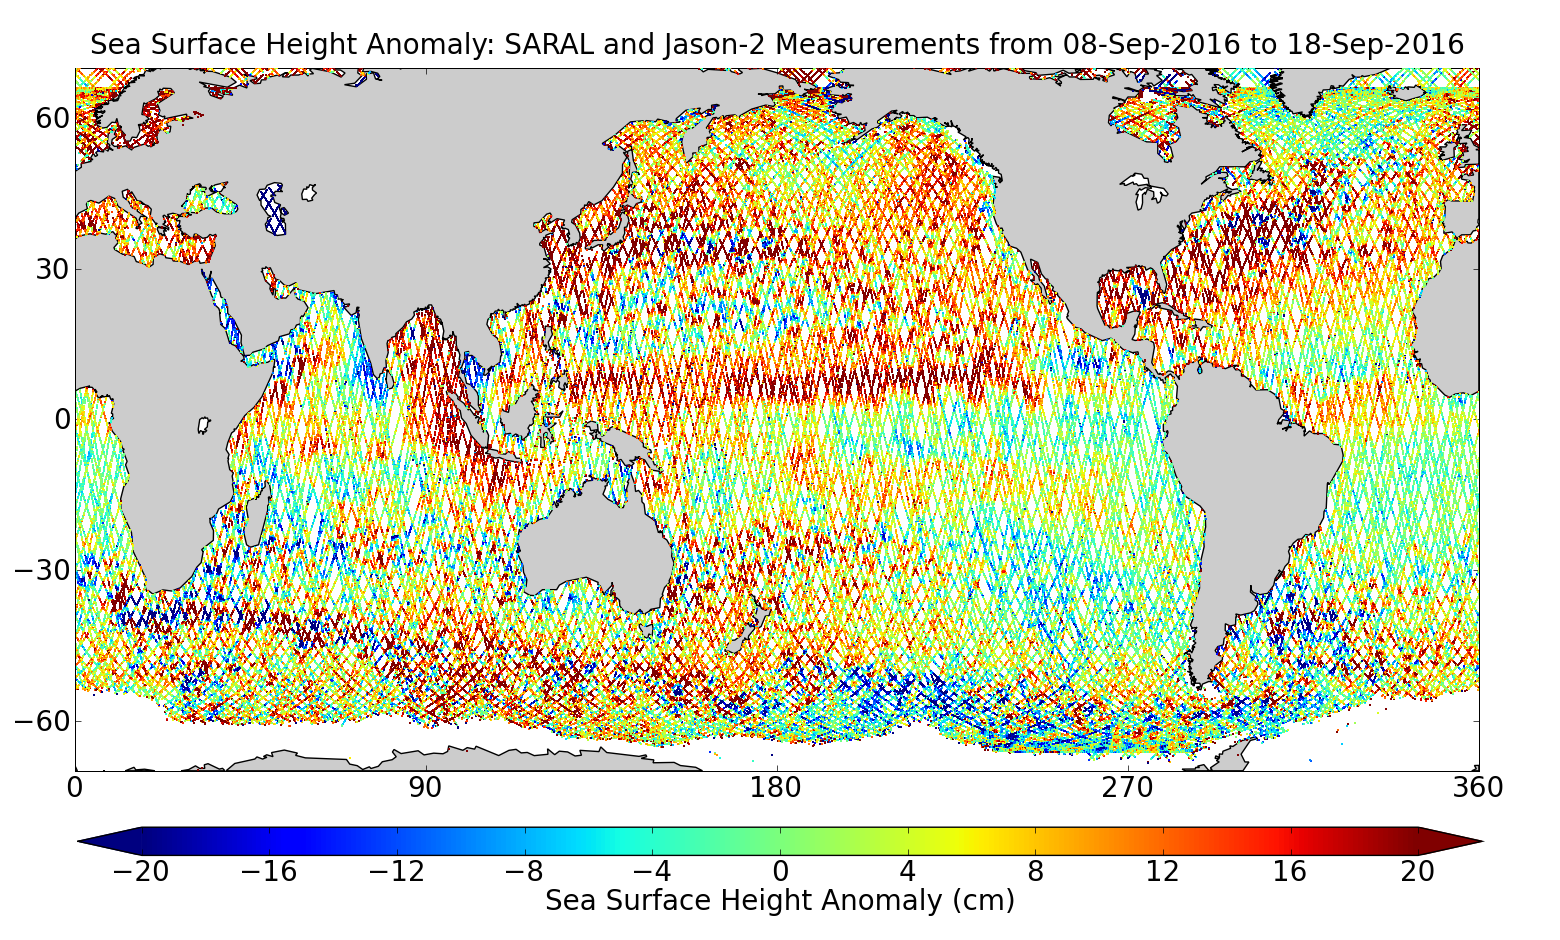 Sea Surface Height Anomaly: SARAL and Jason-2 Measurements from 08-Sep-2016 to 18-Sep-2016